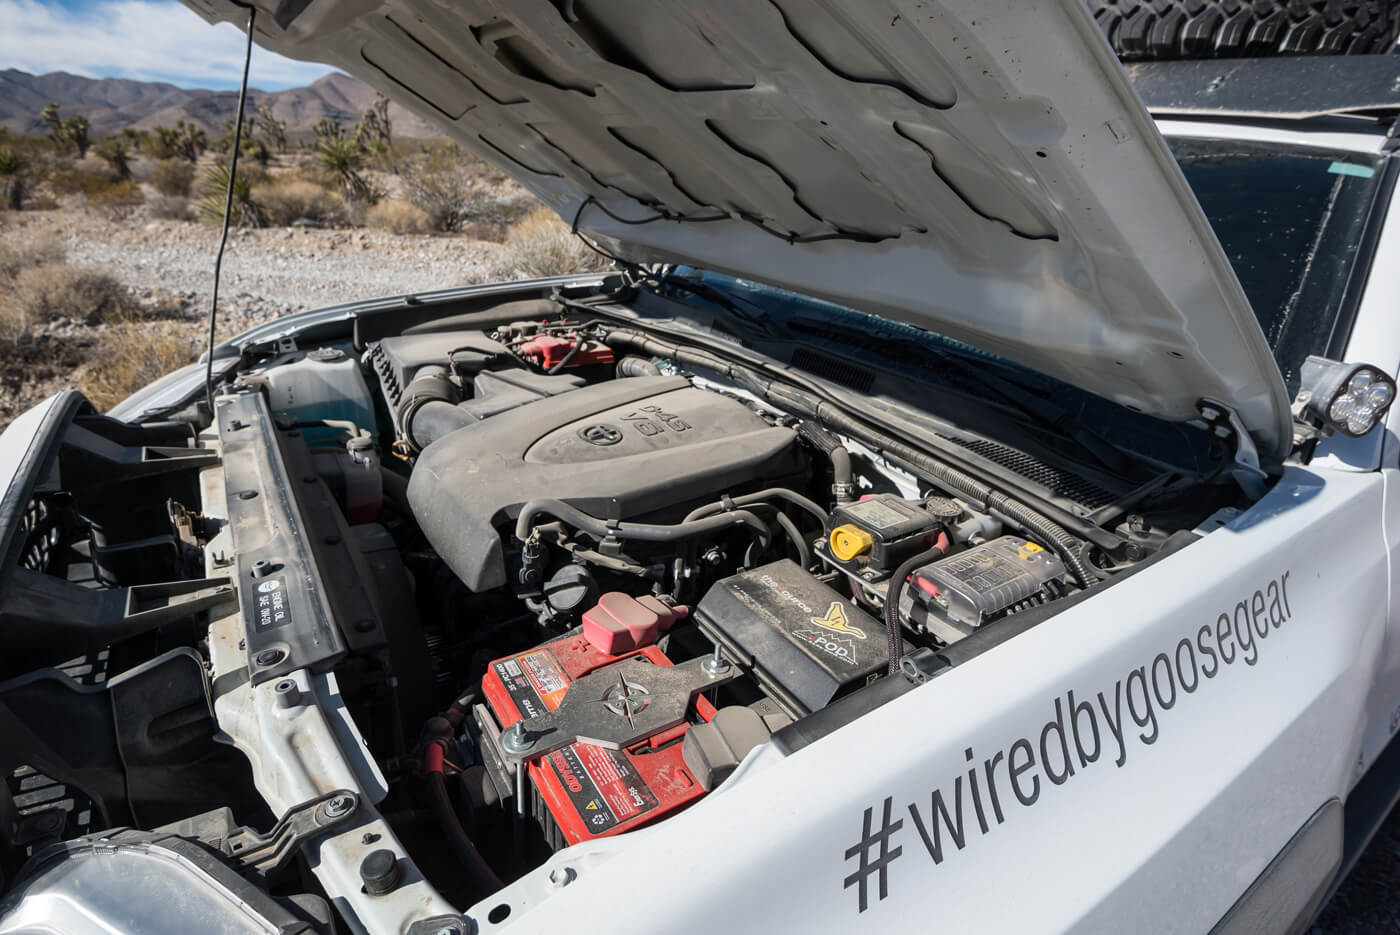 Goose Gears Cozy Tacoma Bed Dual Battery Wiring Increased Capability